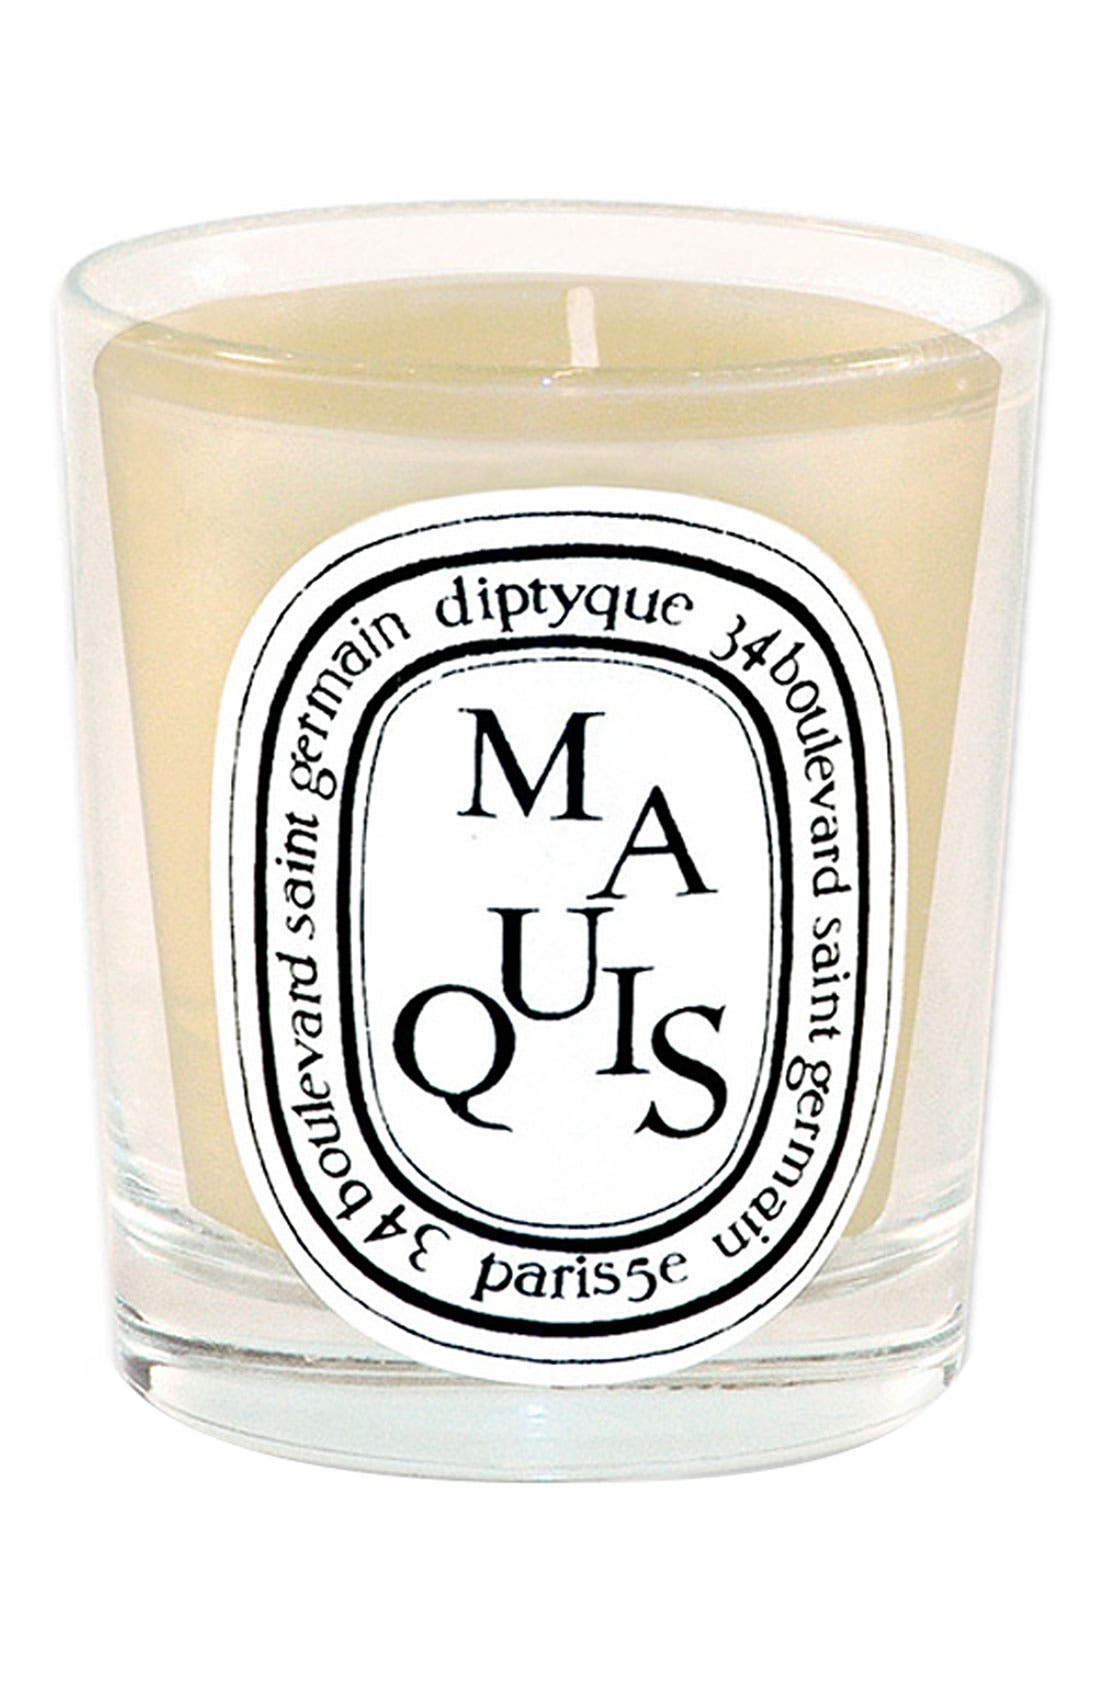 'Maquis' Scented Candle,                             Main thumbnail 1, color,                             000